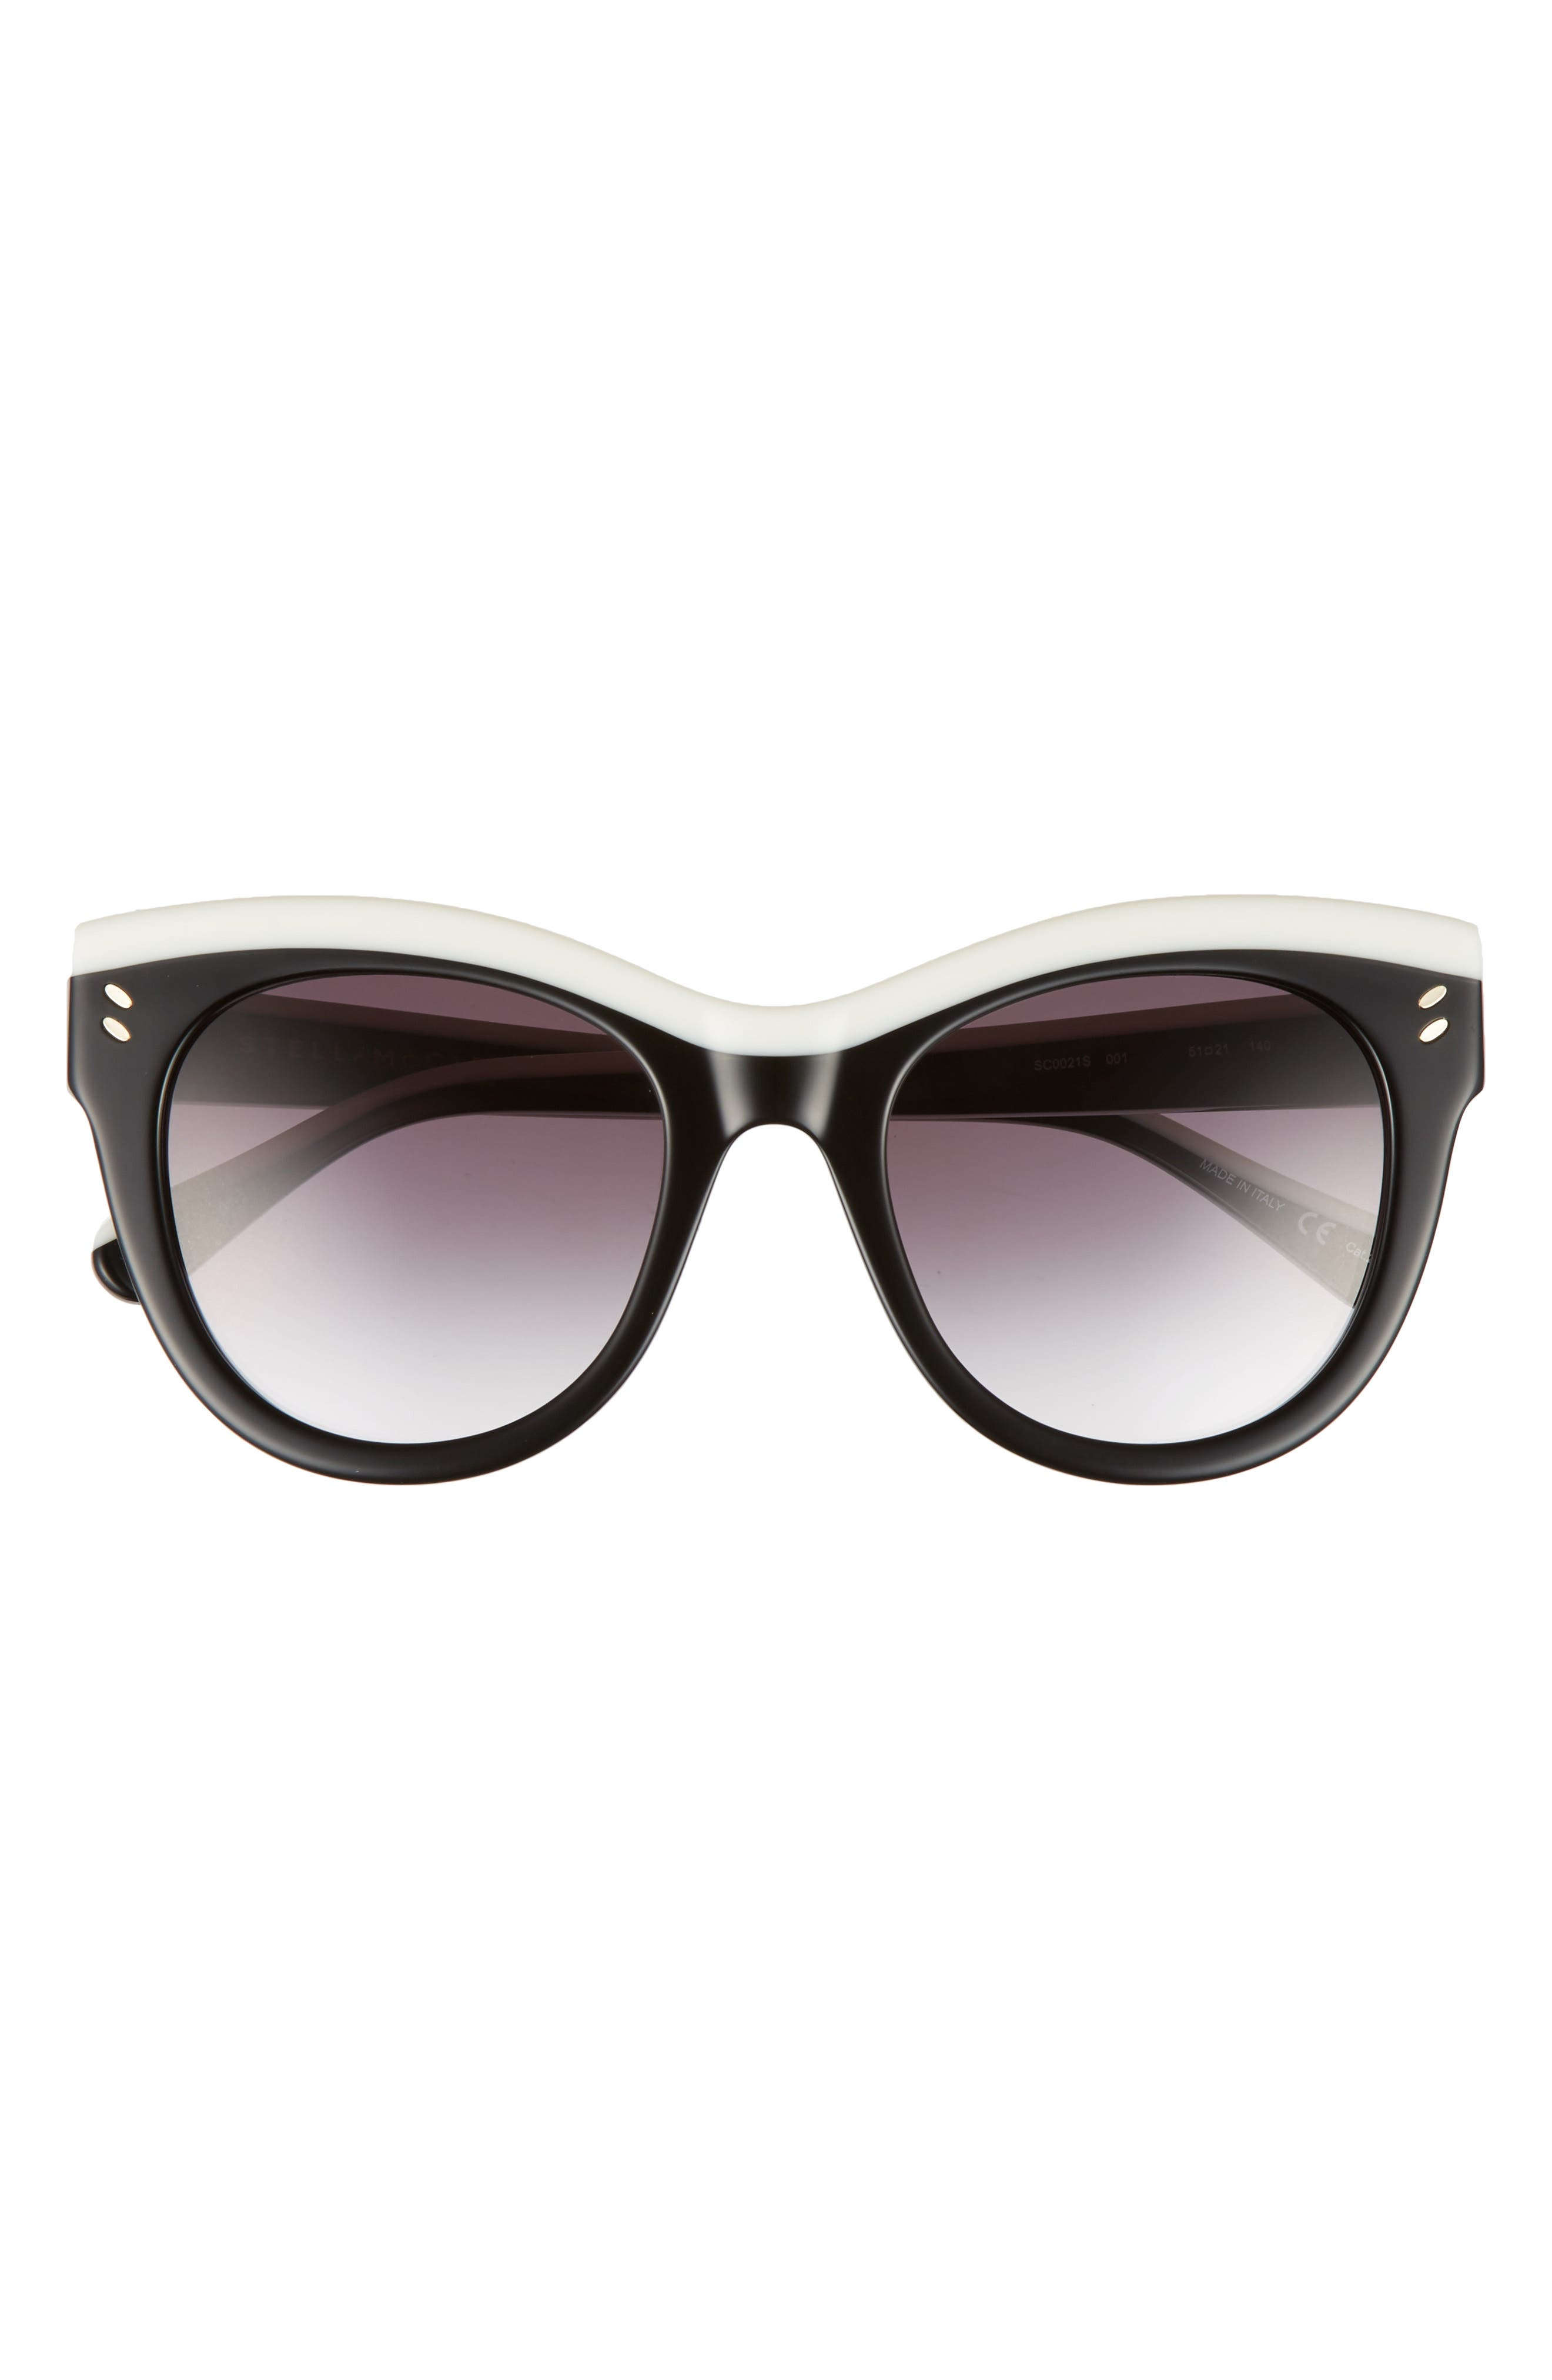 51mm Cat Eye Sunglasses,                             Alternate thumbnail 7, color,